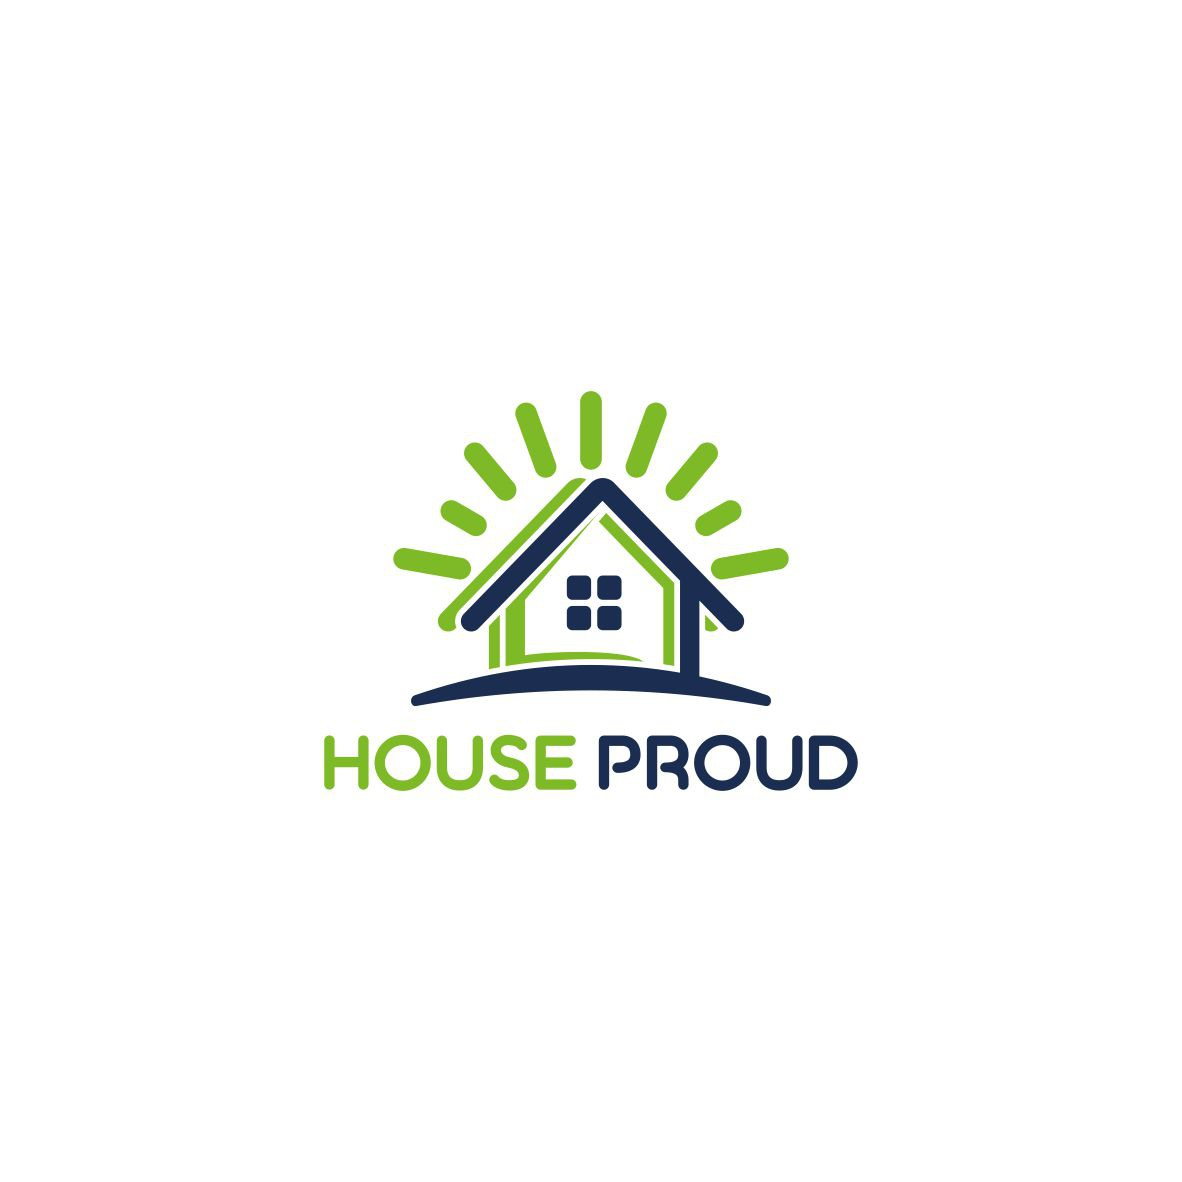 House Proud - New Zealand Home Cleaning Company